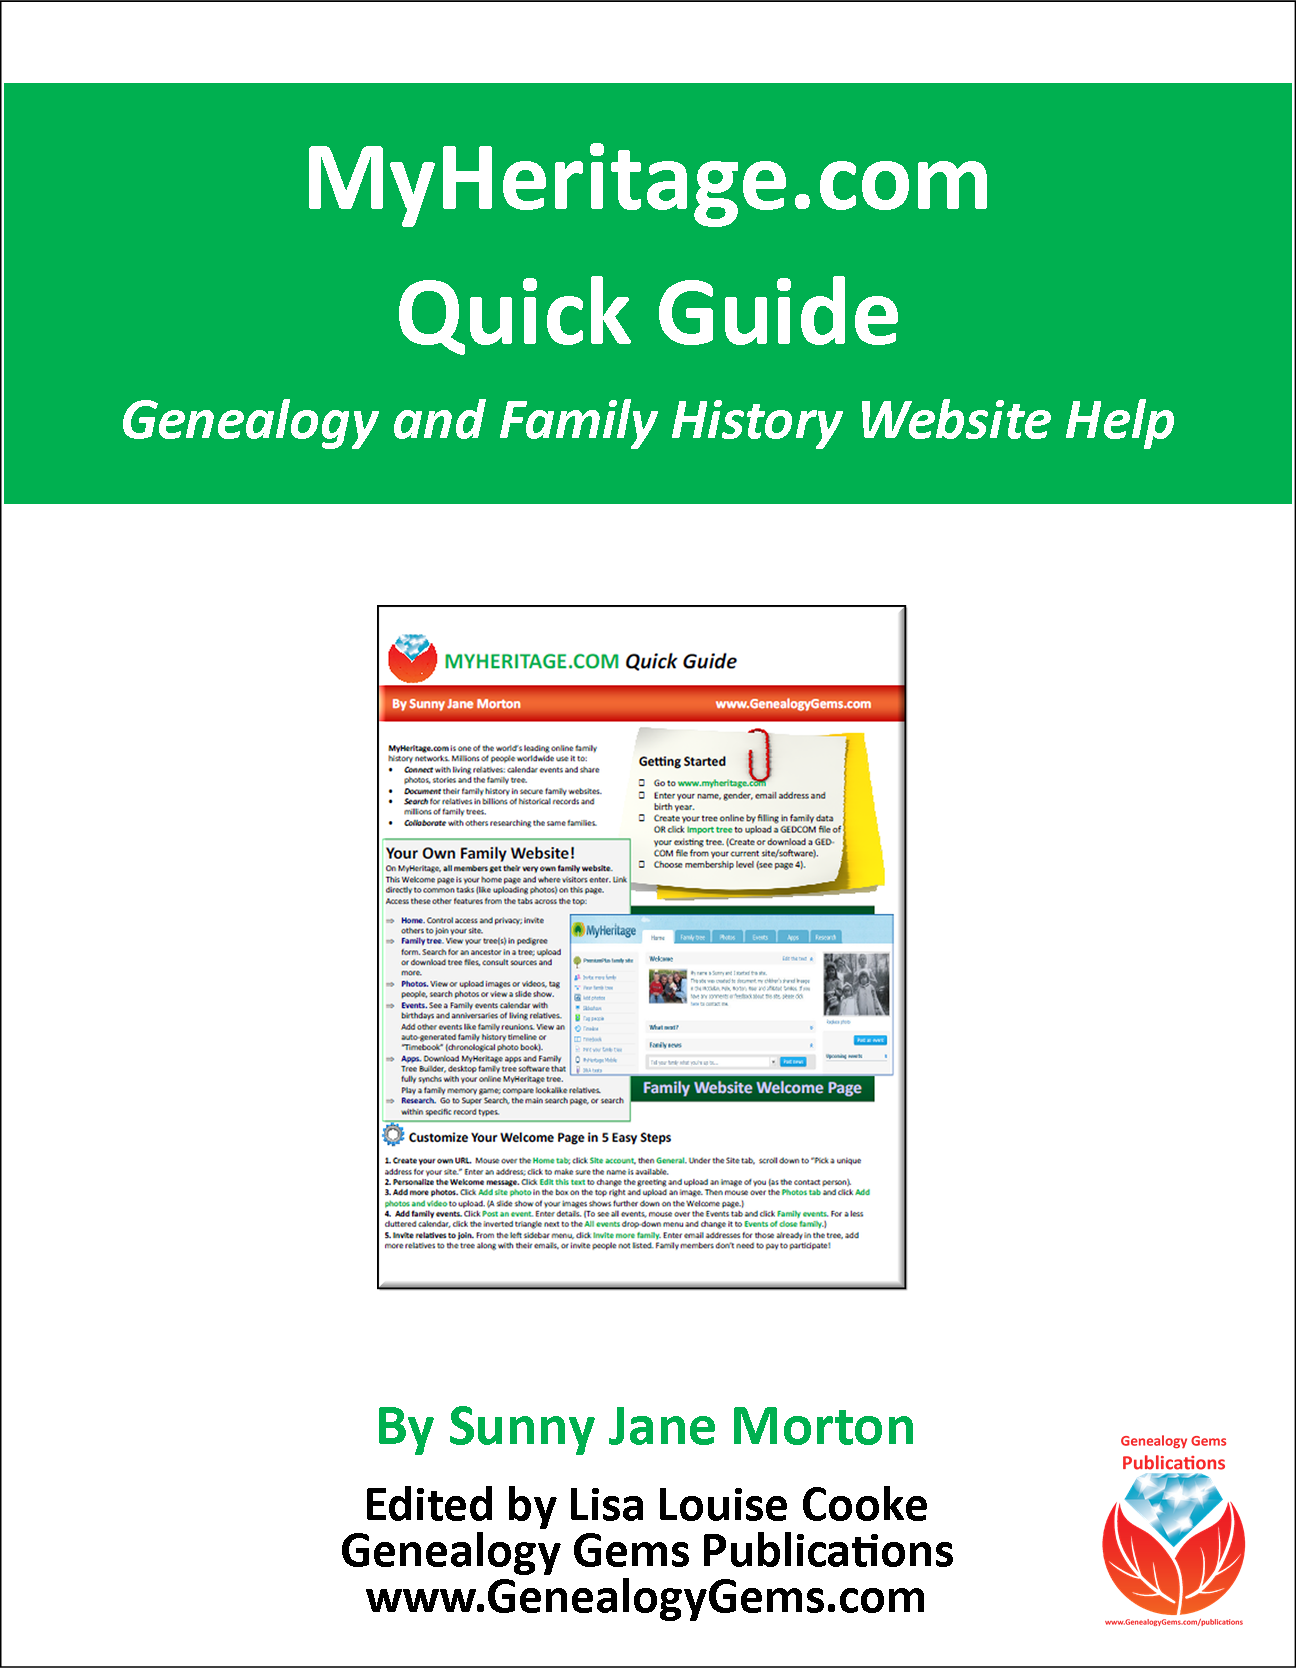 3 Top Uses for the New MyHeritage Collection Catalog